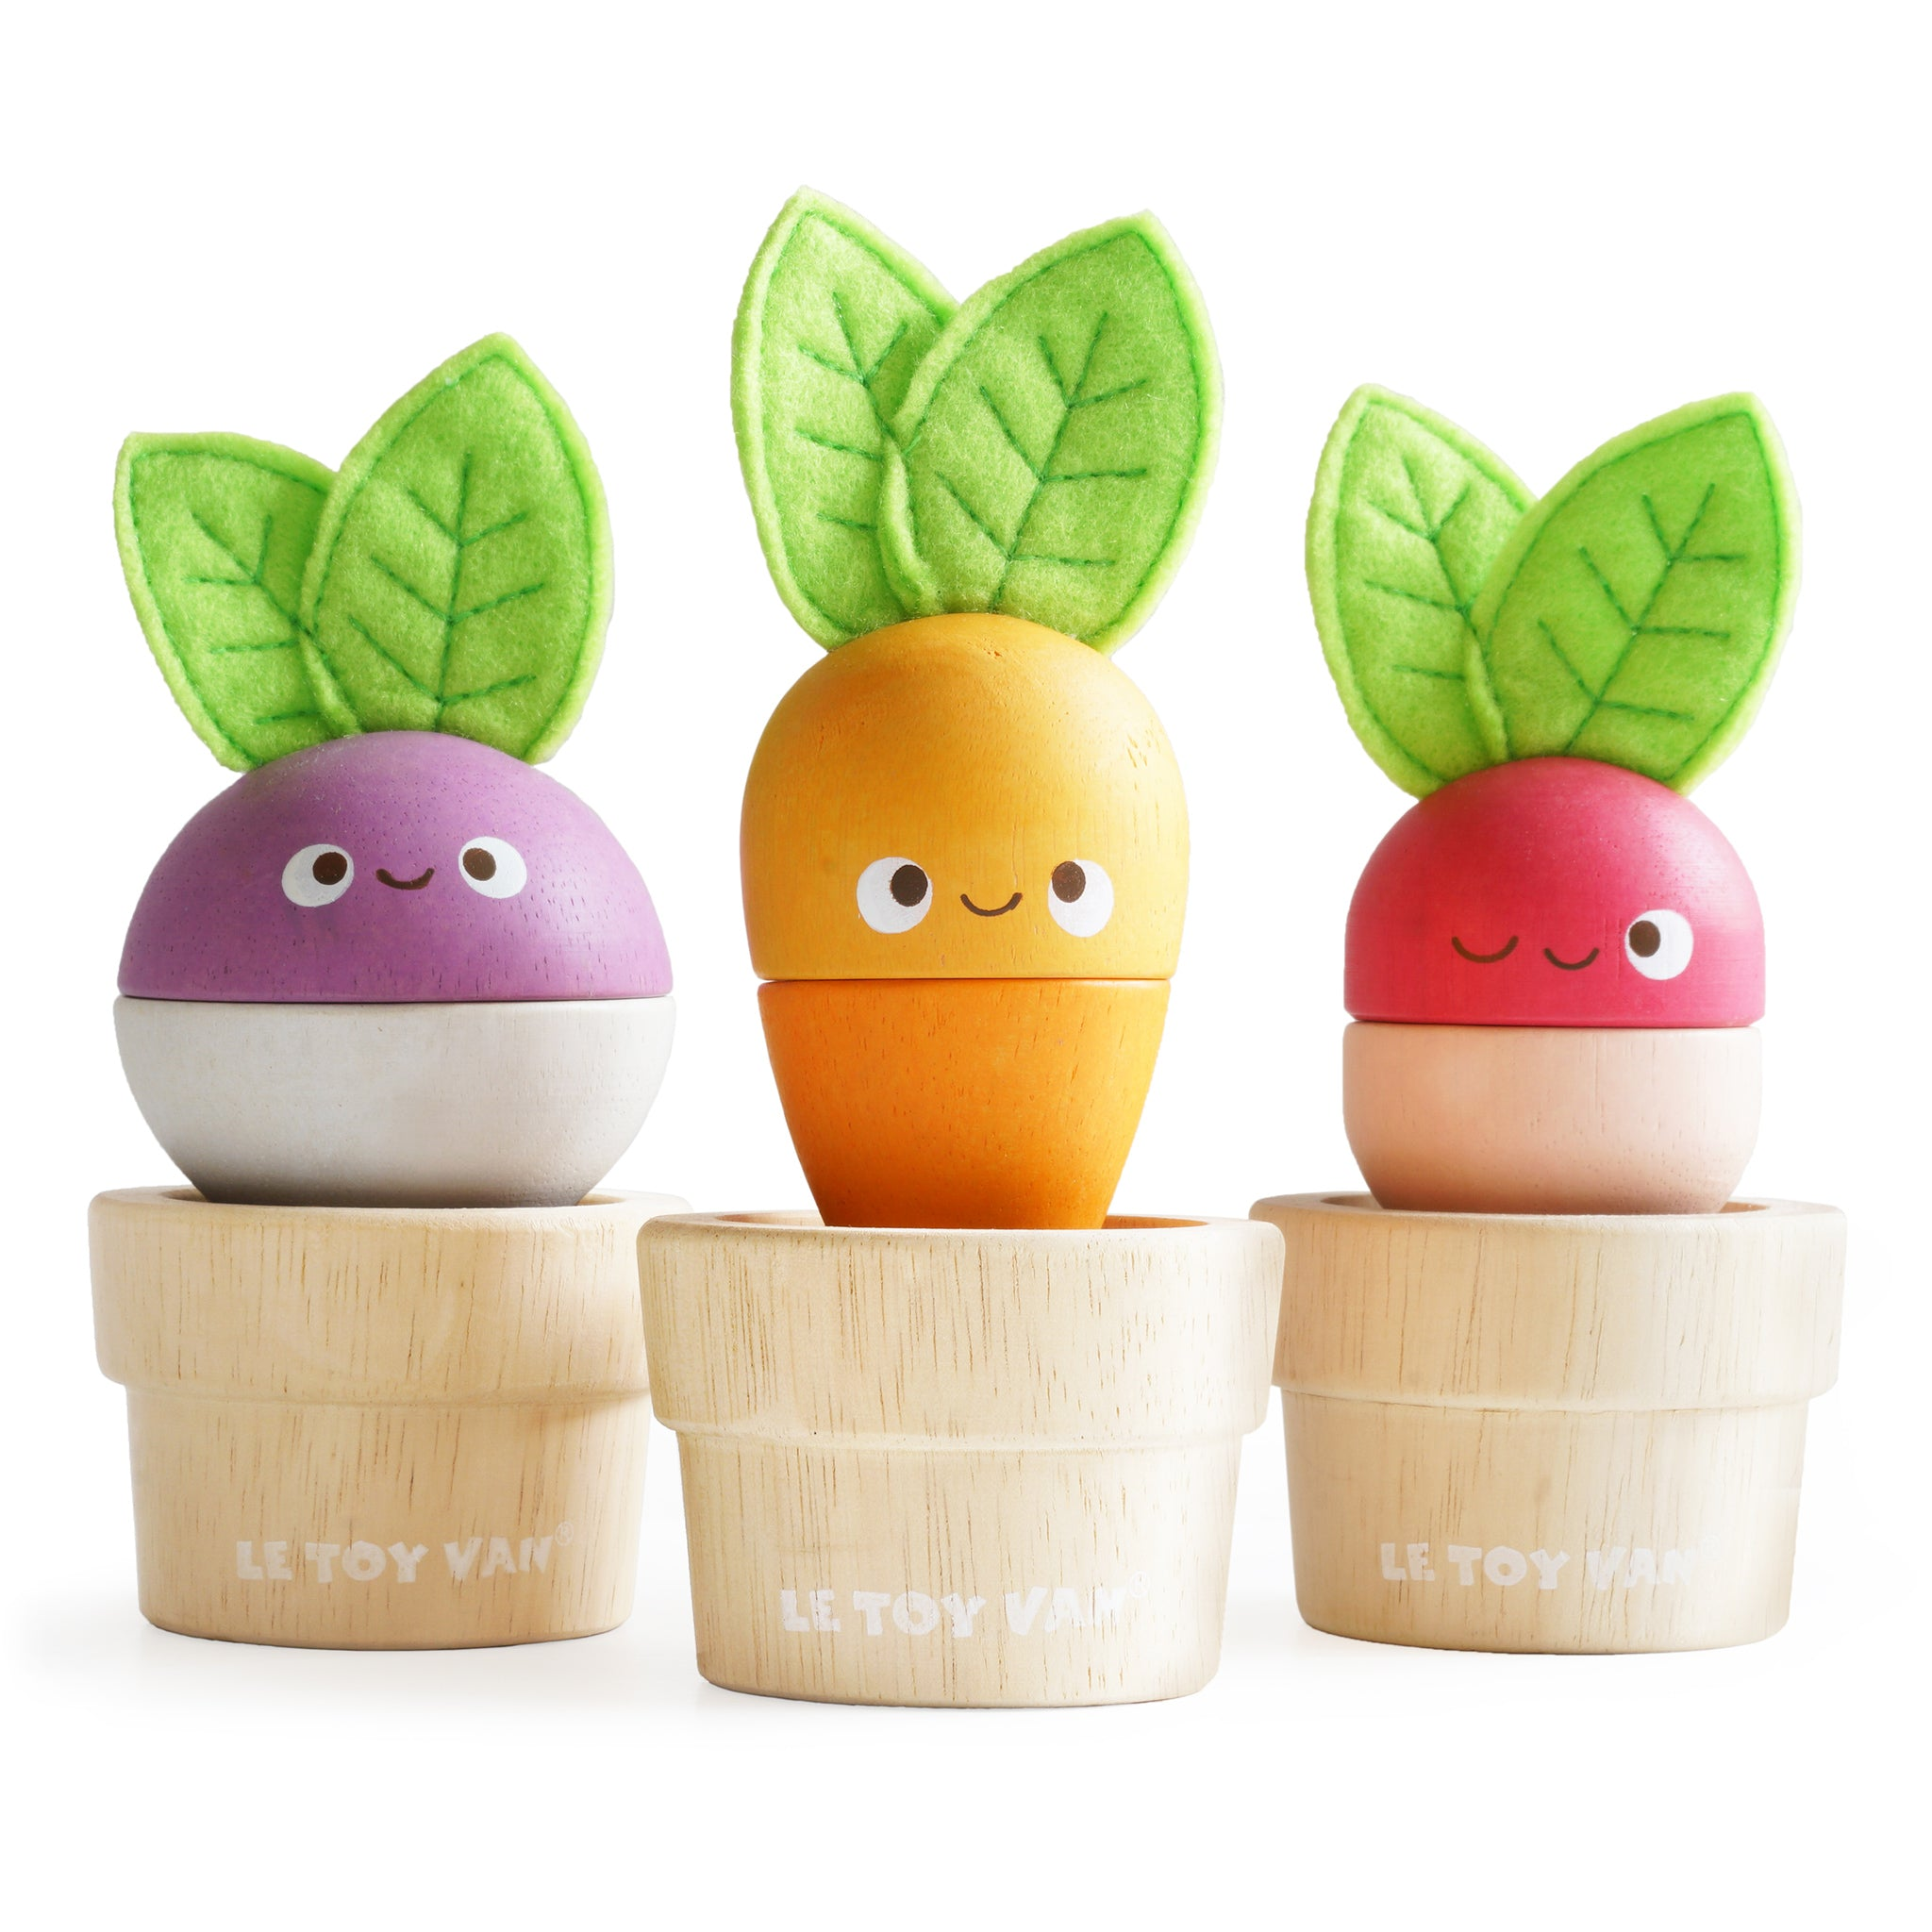 Stacking Veggies Wooden Baby Toddler Nature Toys Le Toy Van